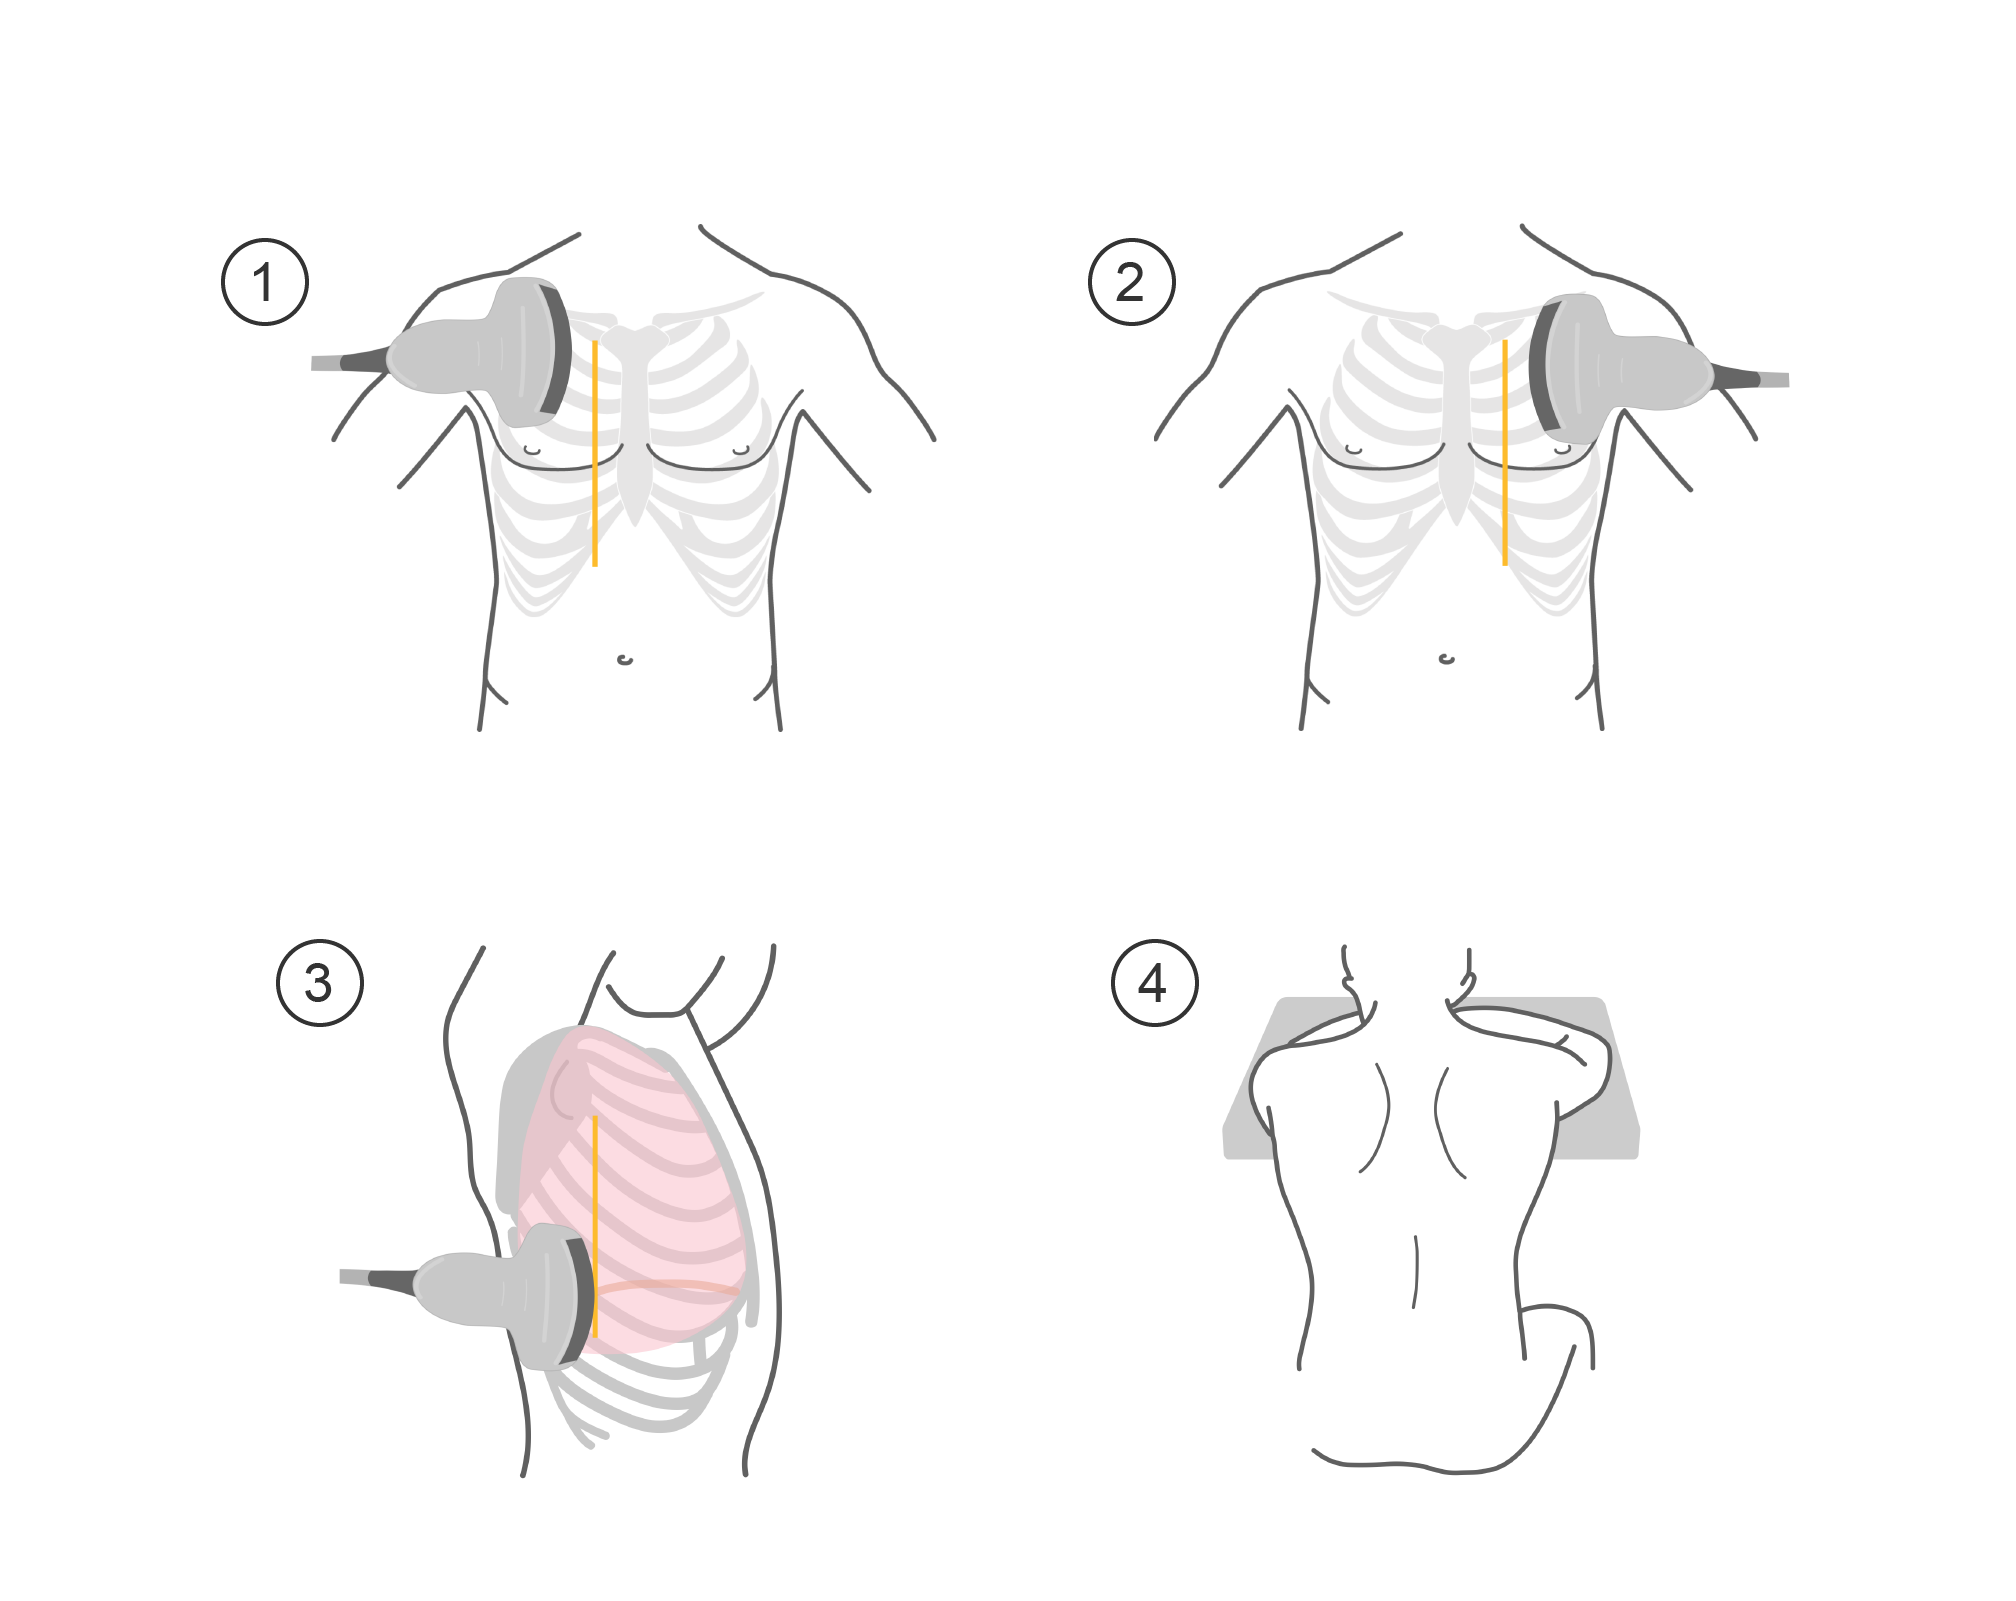 Step-by-step illustration of a patient being scanned with a transducer on the midclavicular and midaxillary lines, and posteriorly.